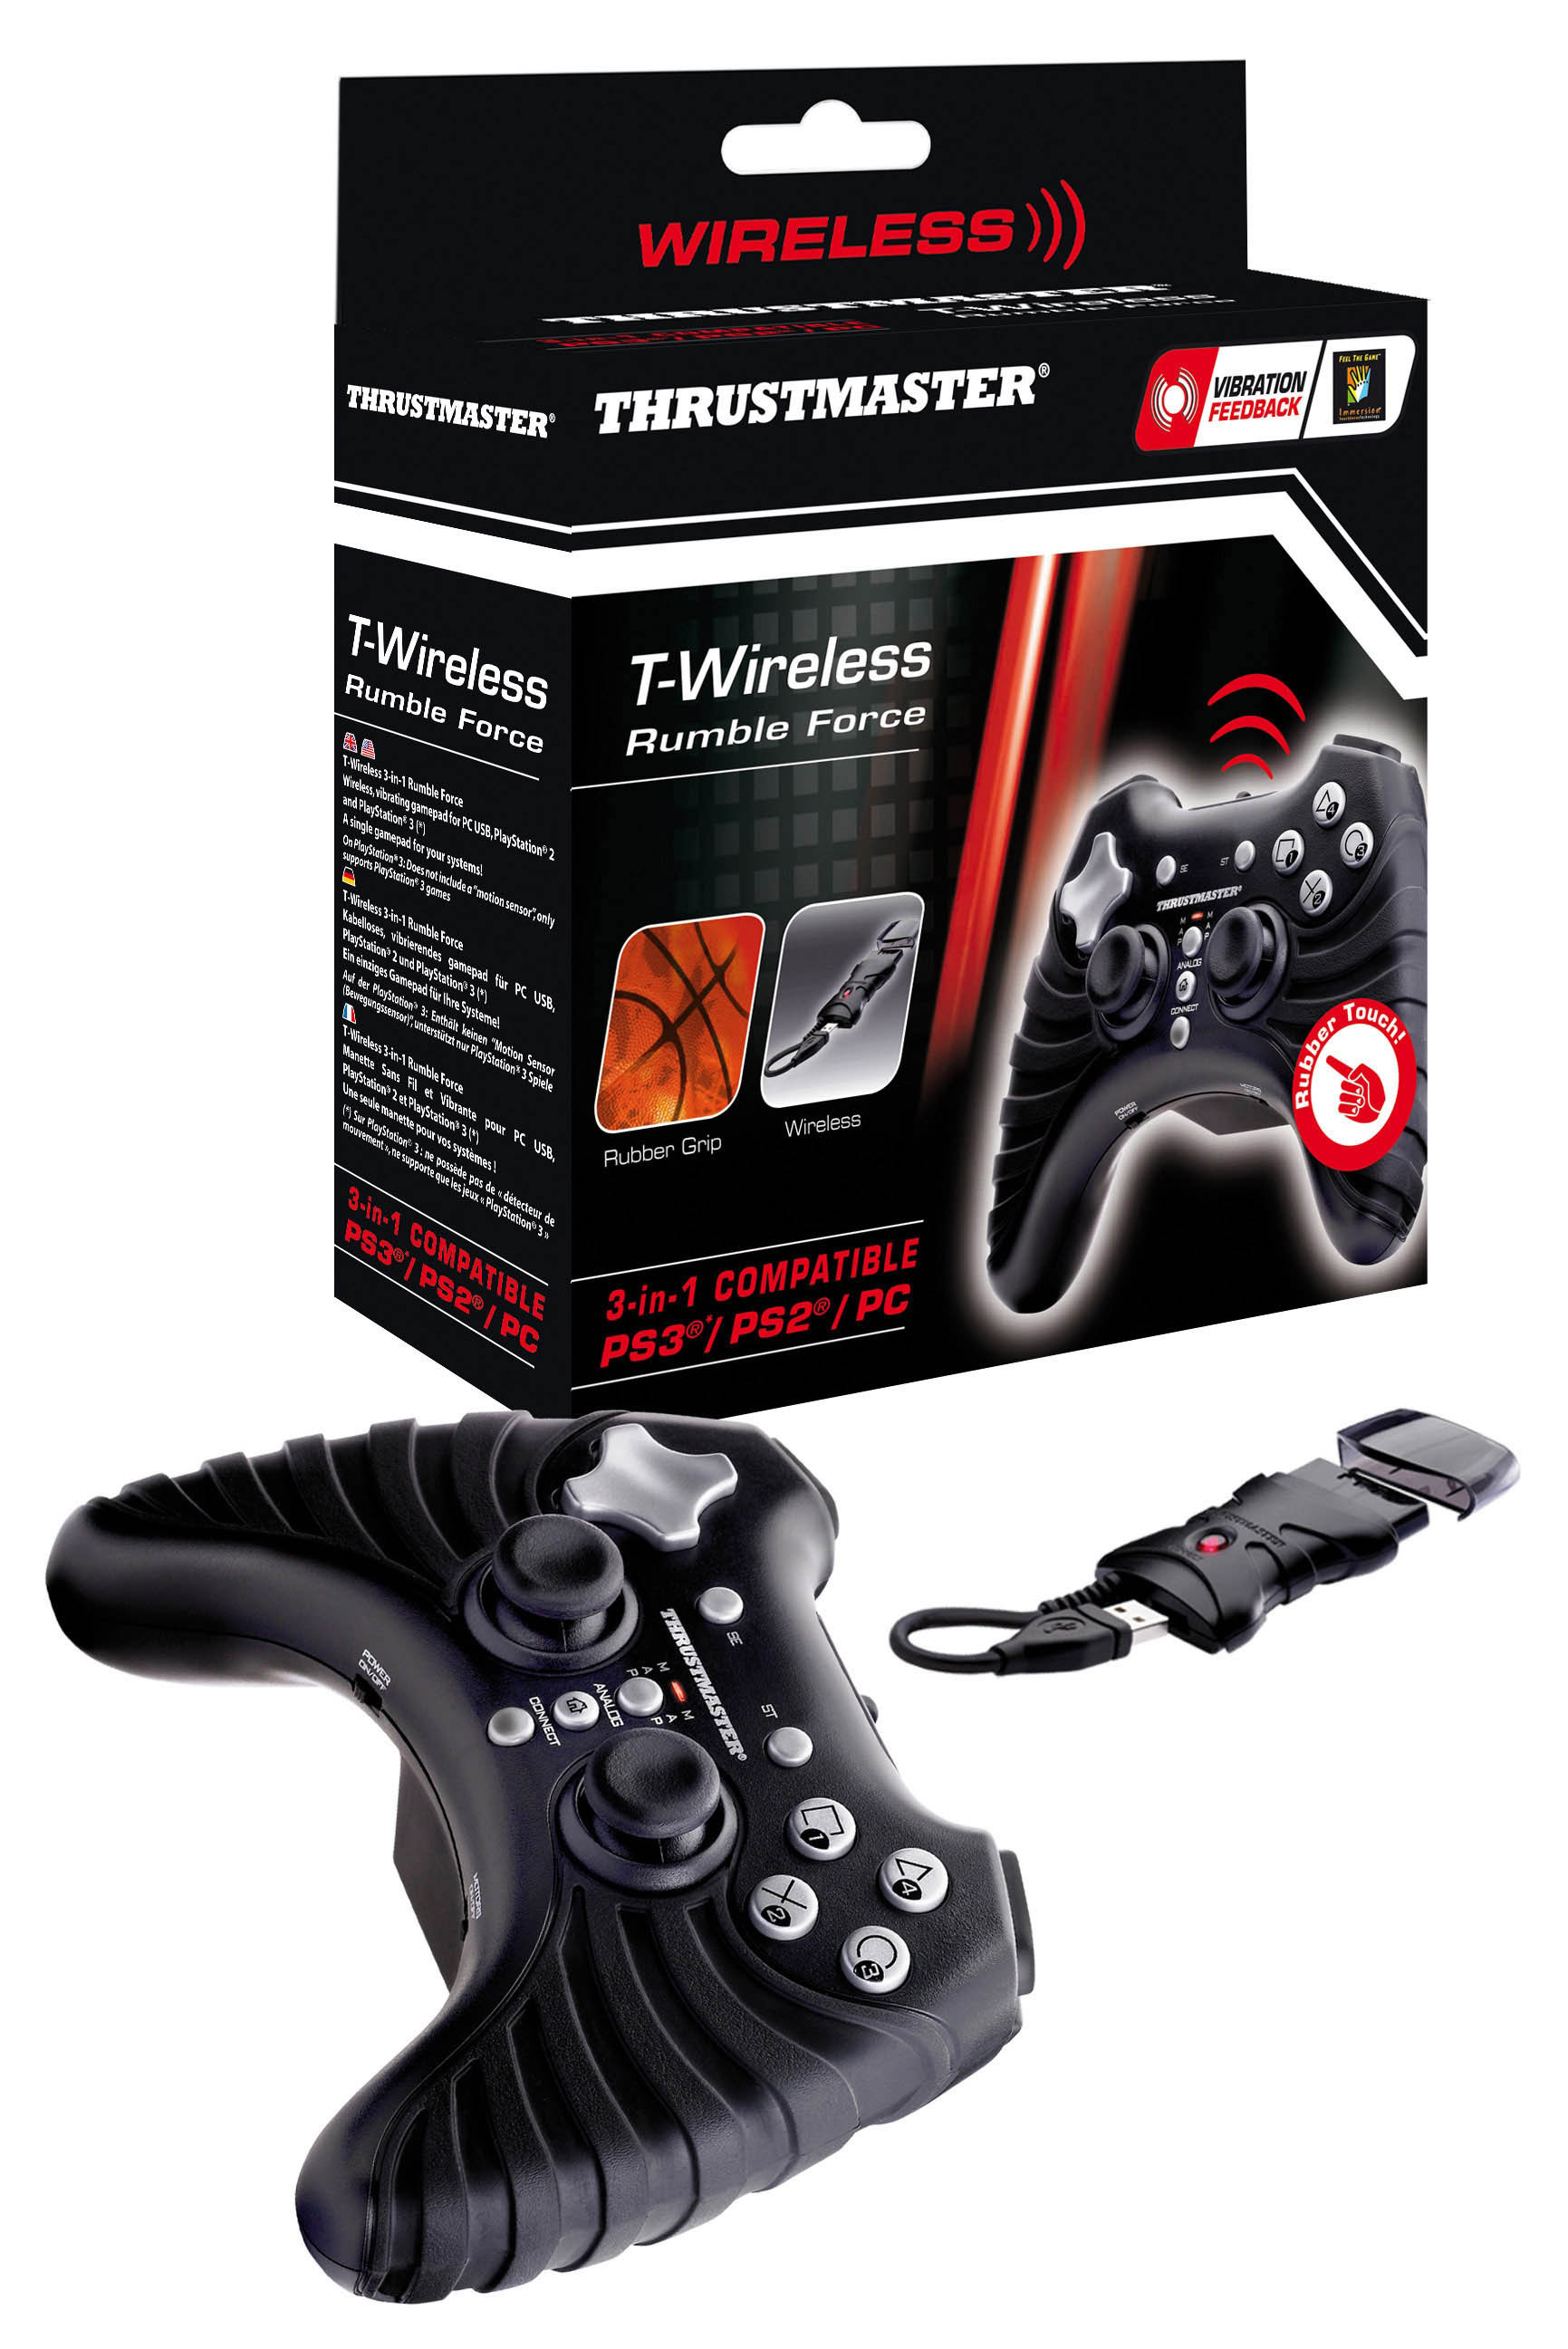 Thrustmaster Bezdrátový Gamepad 3 v 1 rumble force, pro PC, PS 2, PS 3